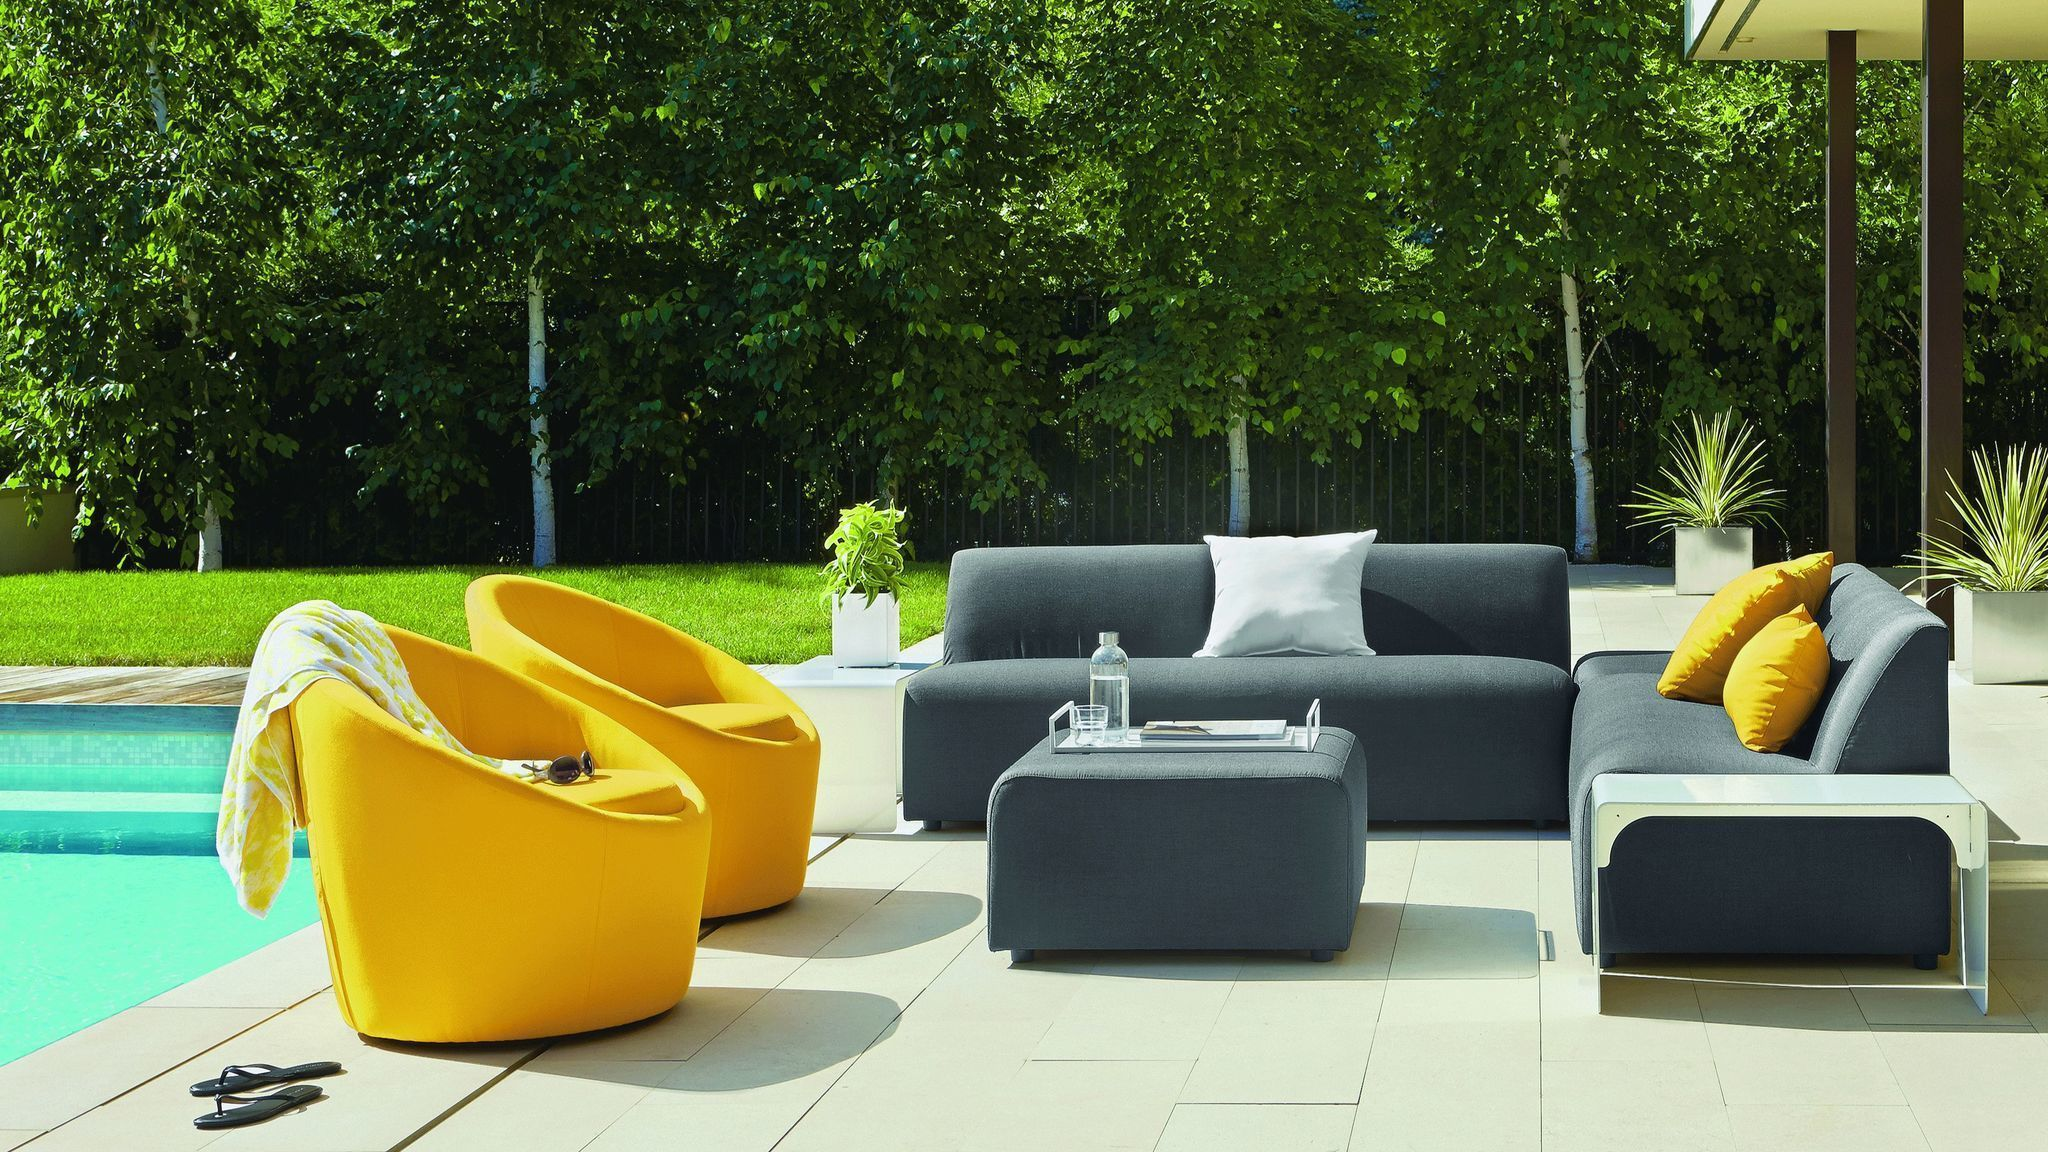 Take It Outside 8 Hot Trends In Outdoor Home Furnishing